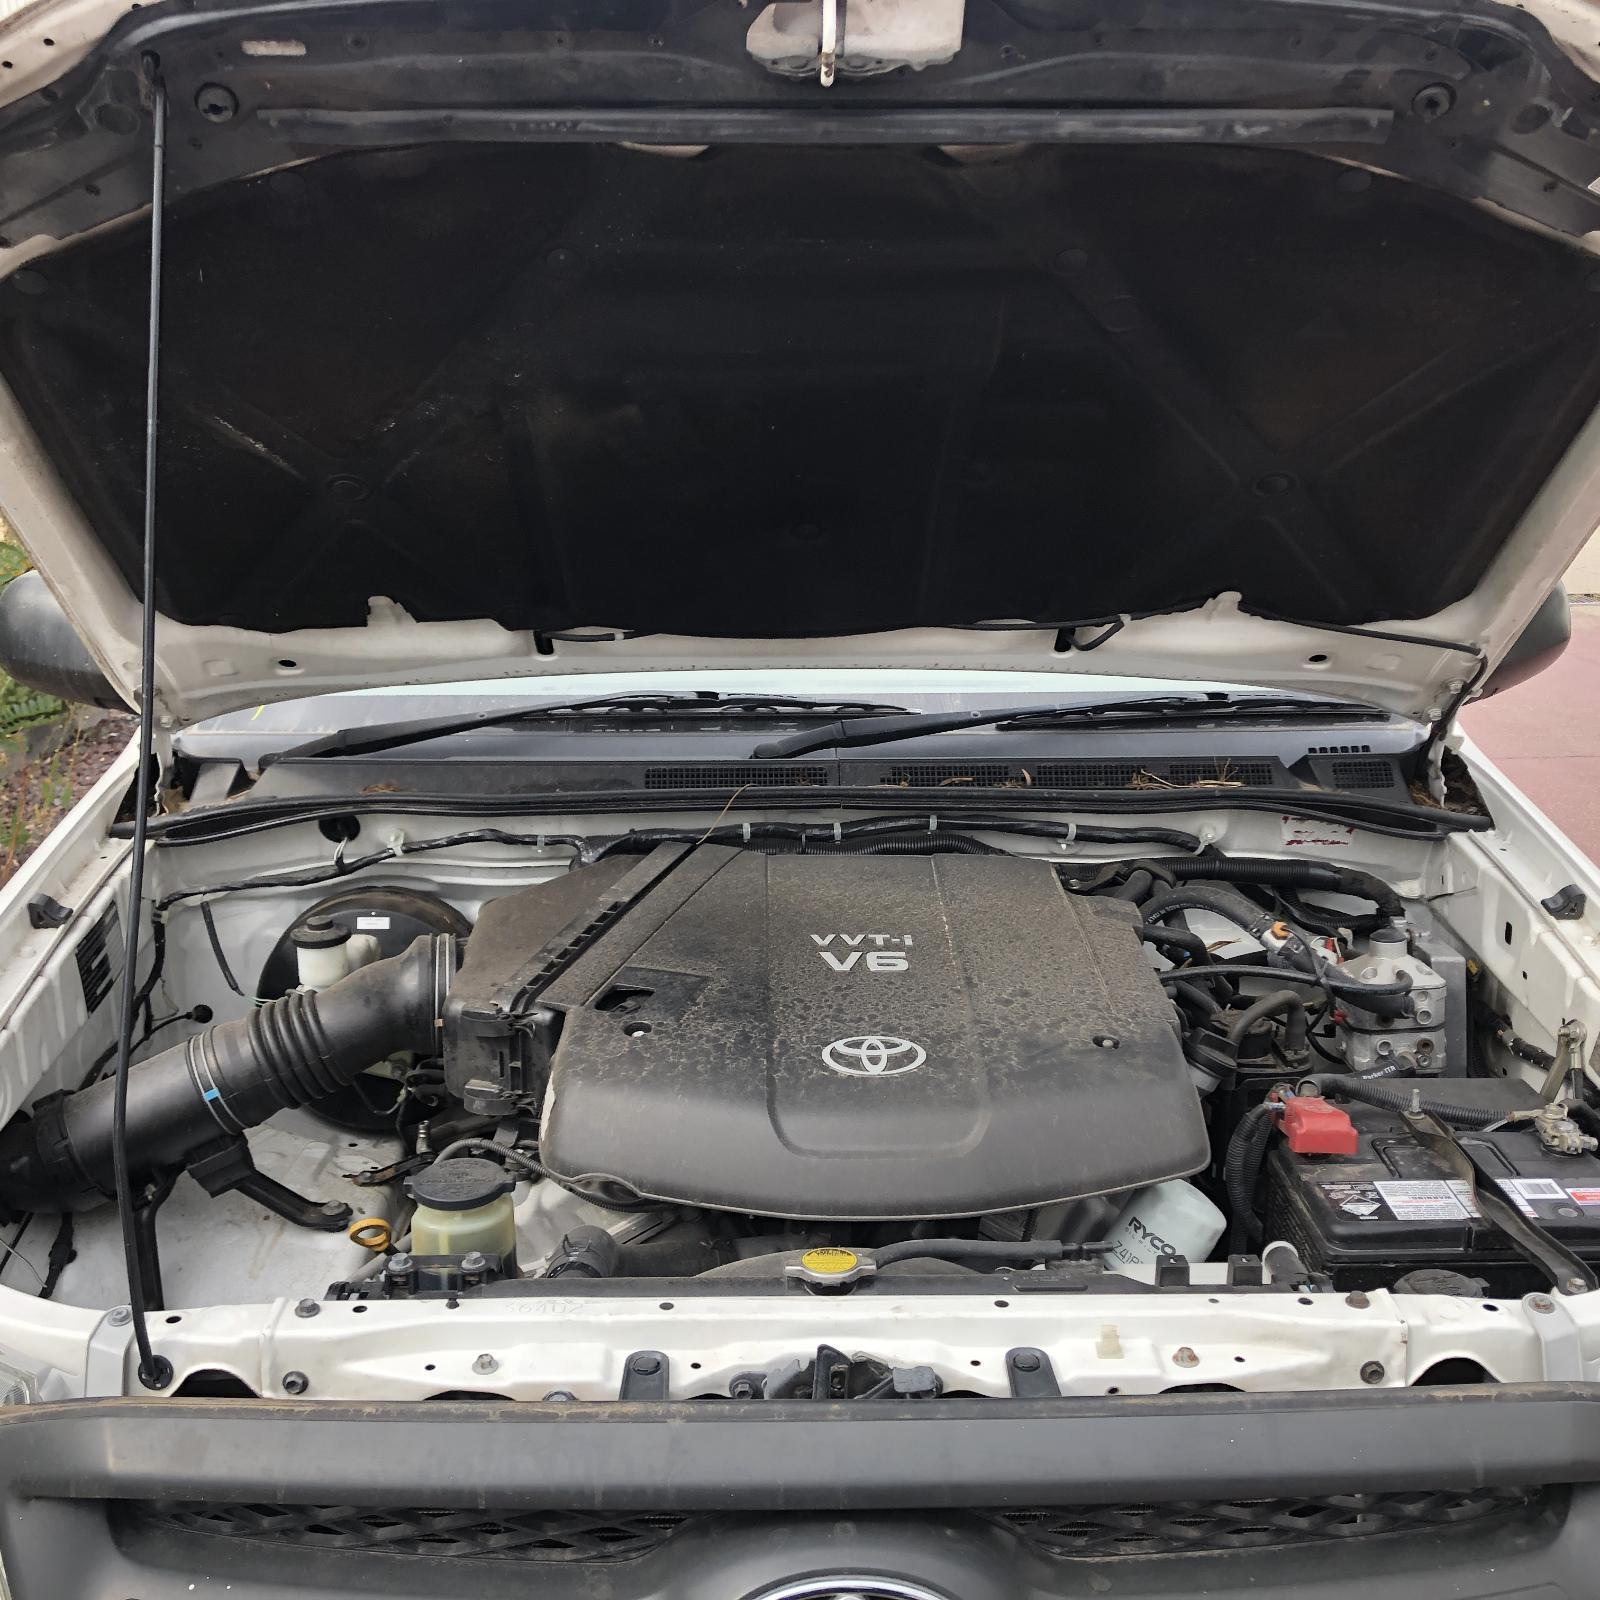 TOYOTA HILUX, Trans/Gearbox, MANUAL, 2WD, PETROL, 4.0, 1GR-FE, 5 SPEED, 03/05-08/15